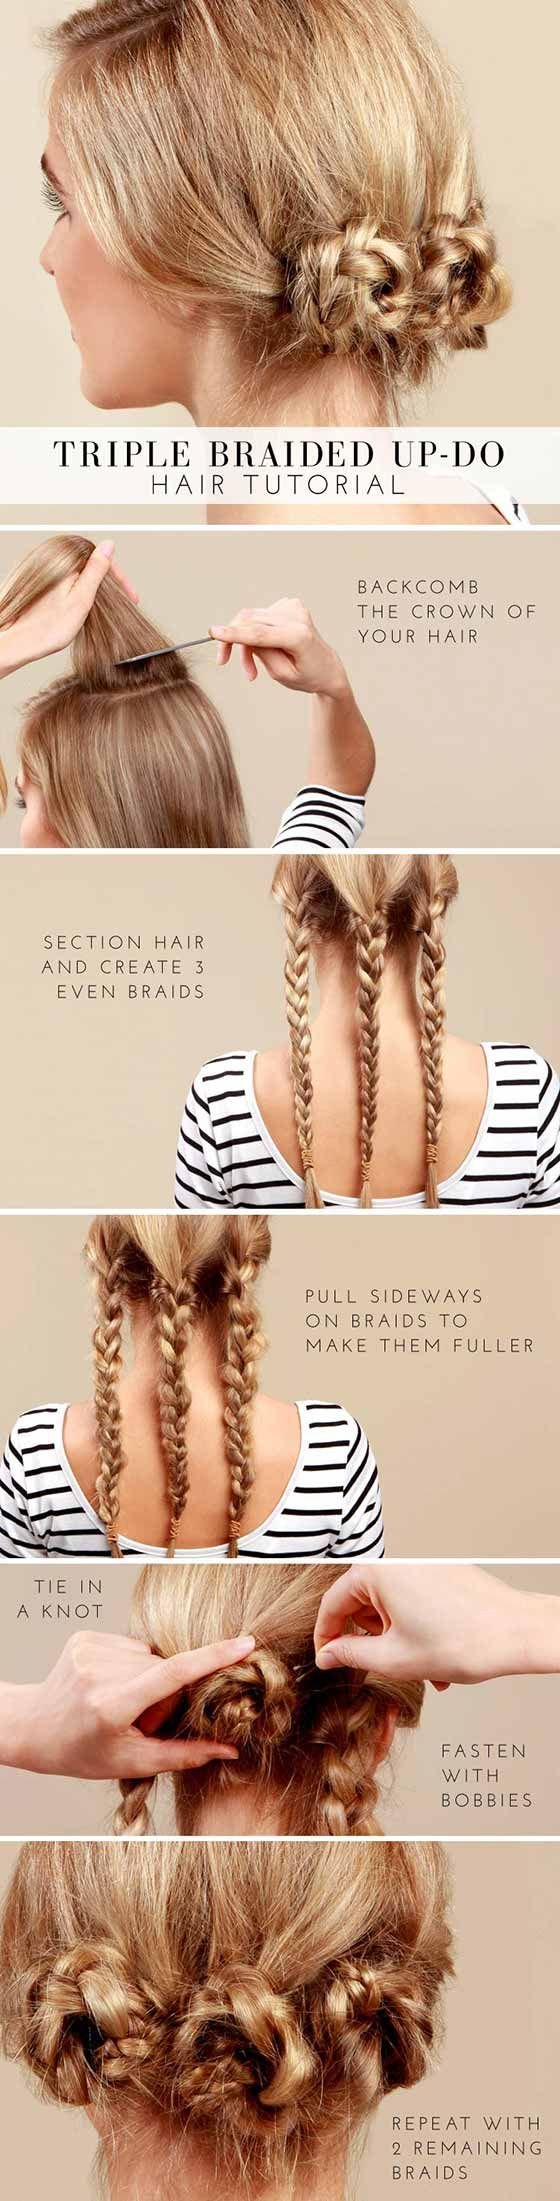 Braided Hairstyles For Long Hair - Triple Braided Bun